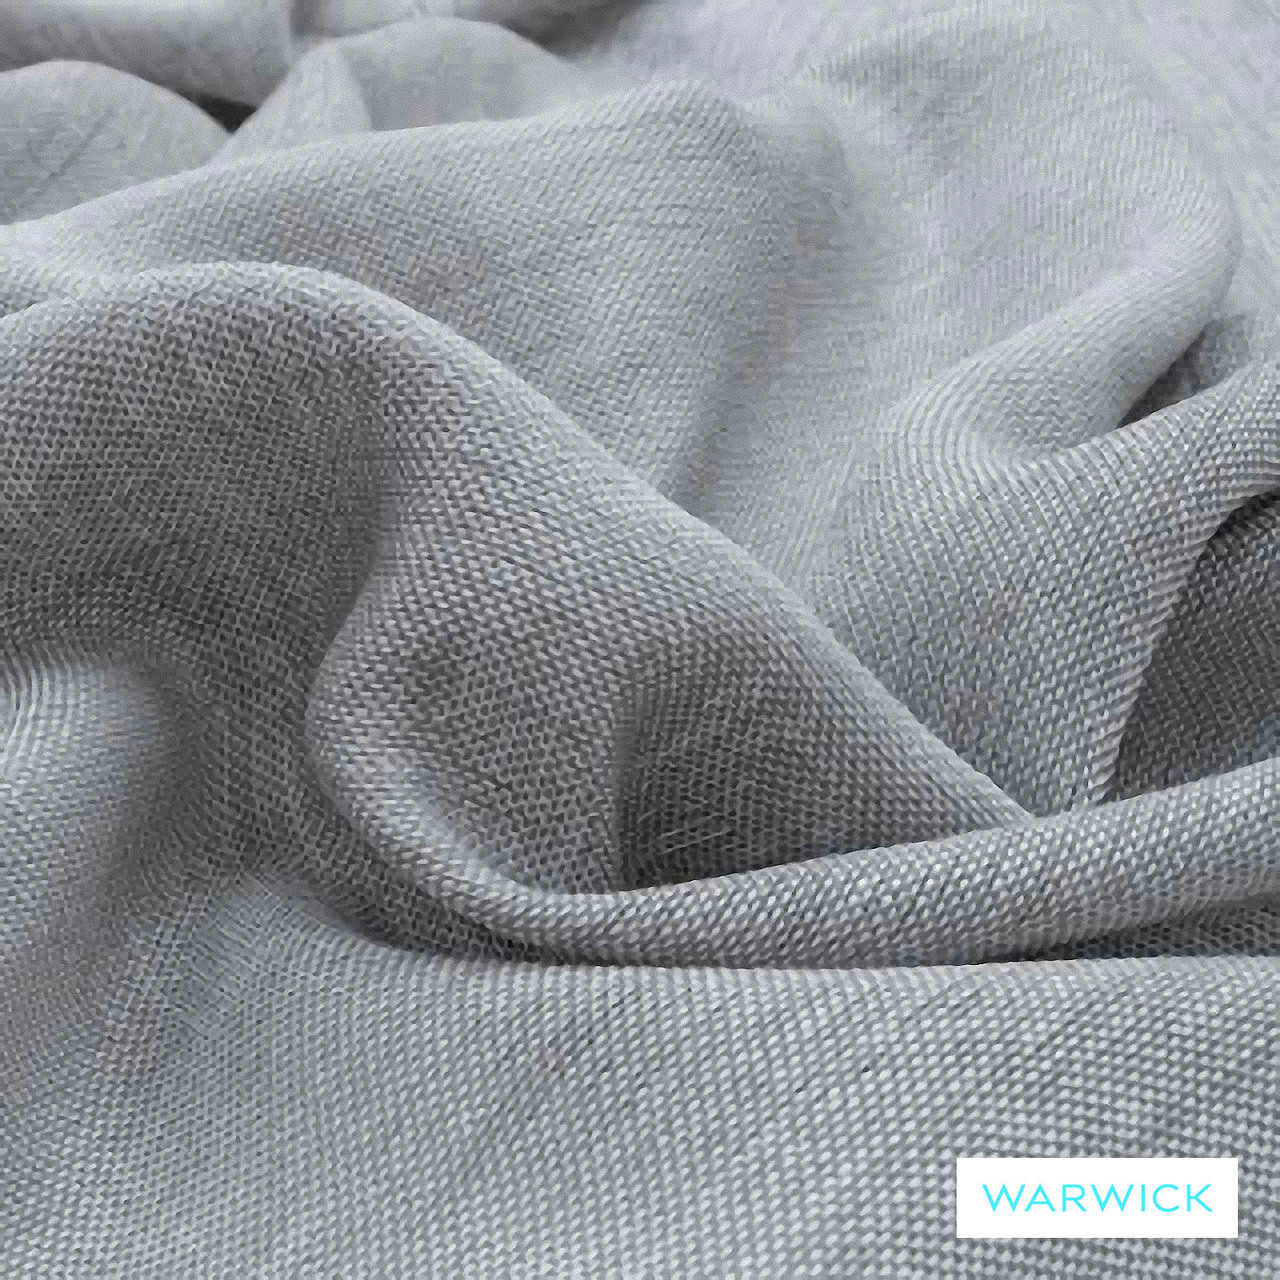 Warwick Chios Asphalt  | Curtain Sheer Fabric - Grey, Plain, Synthetic, Transitional, Washable, Domestic Use, Weighted Hem